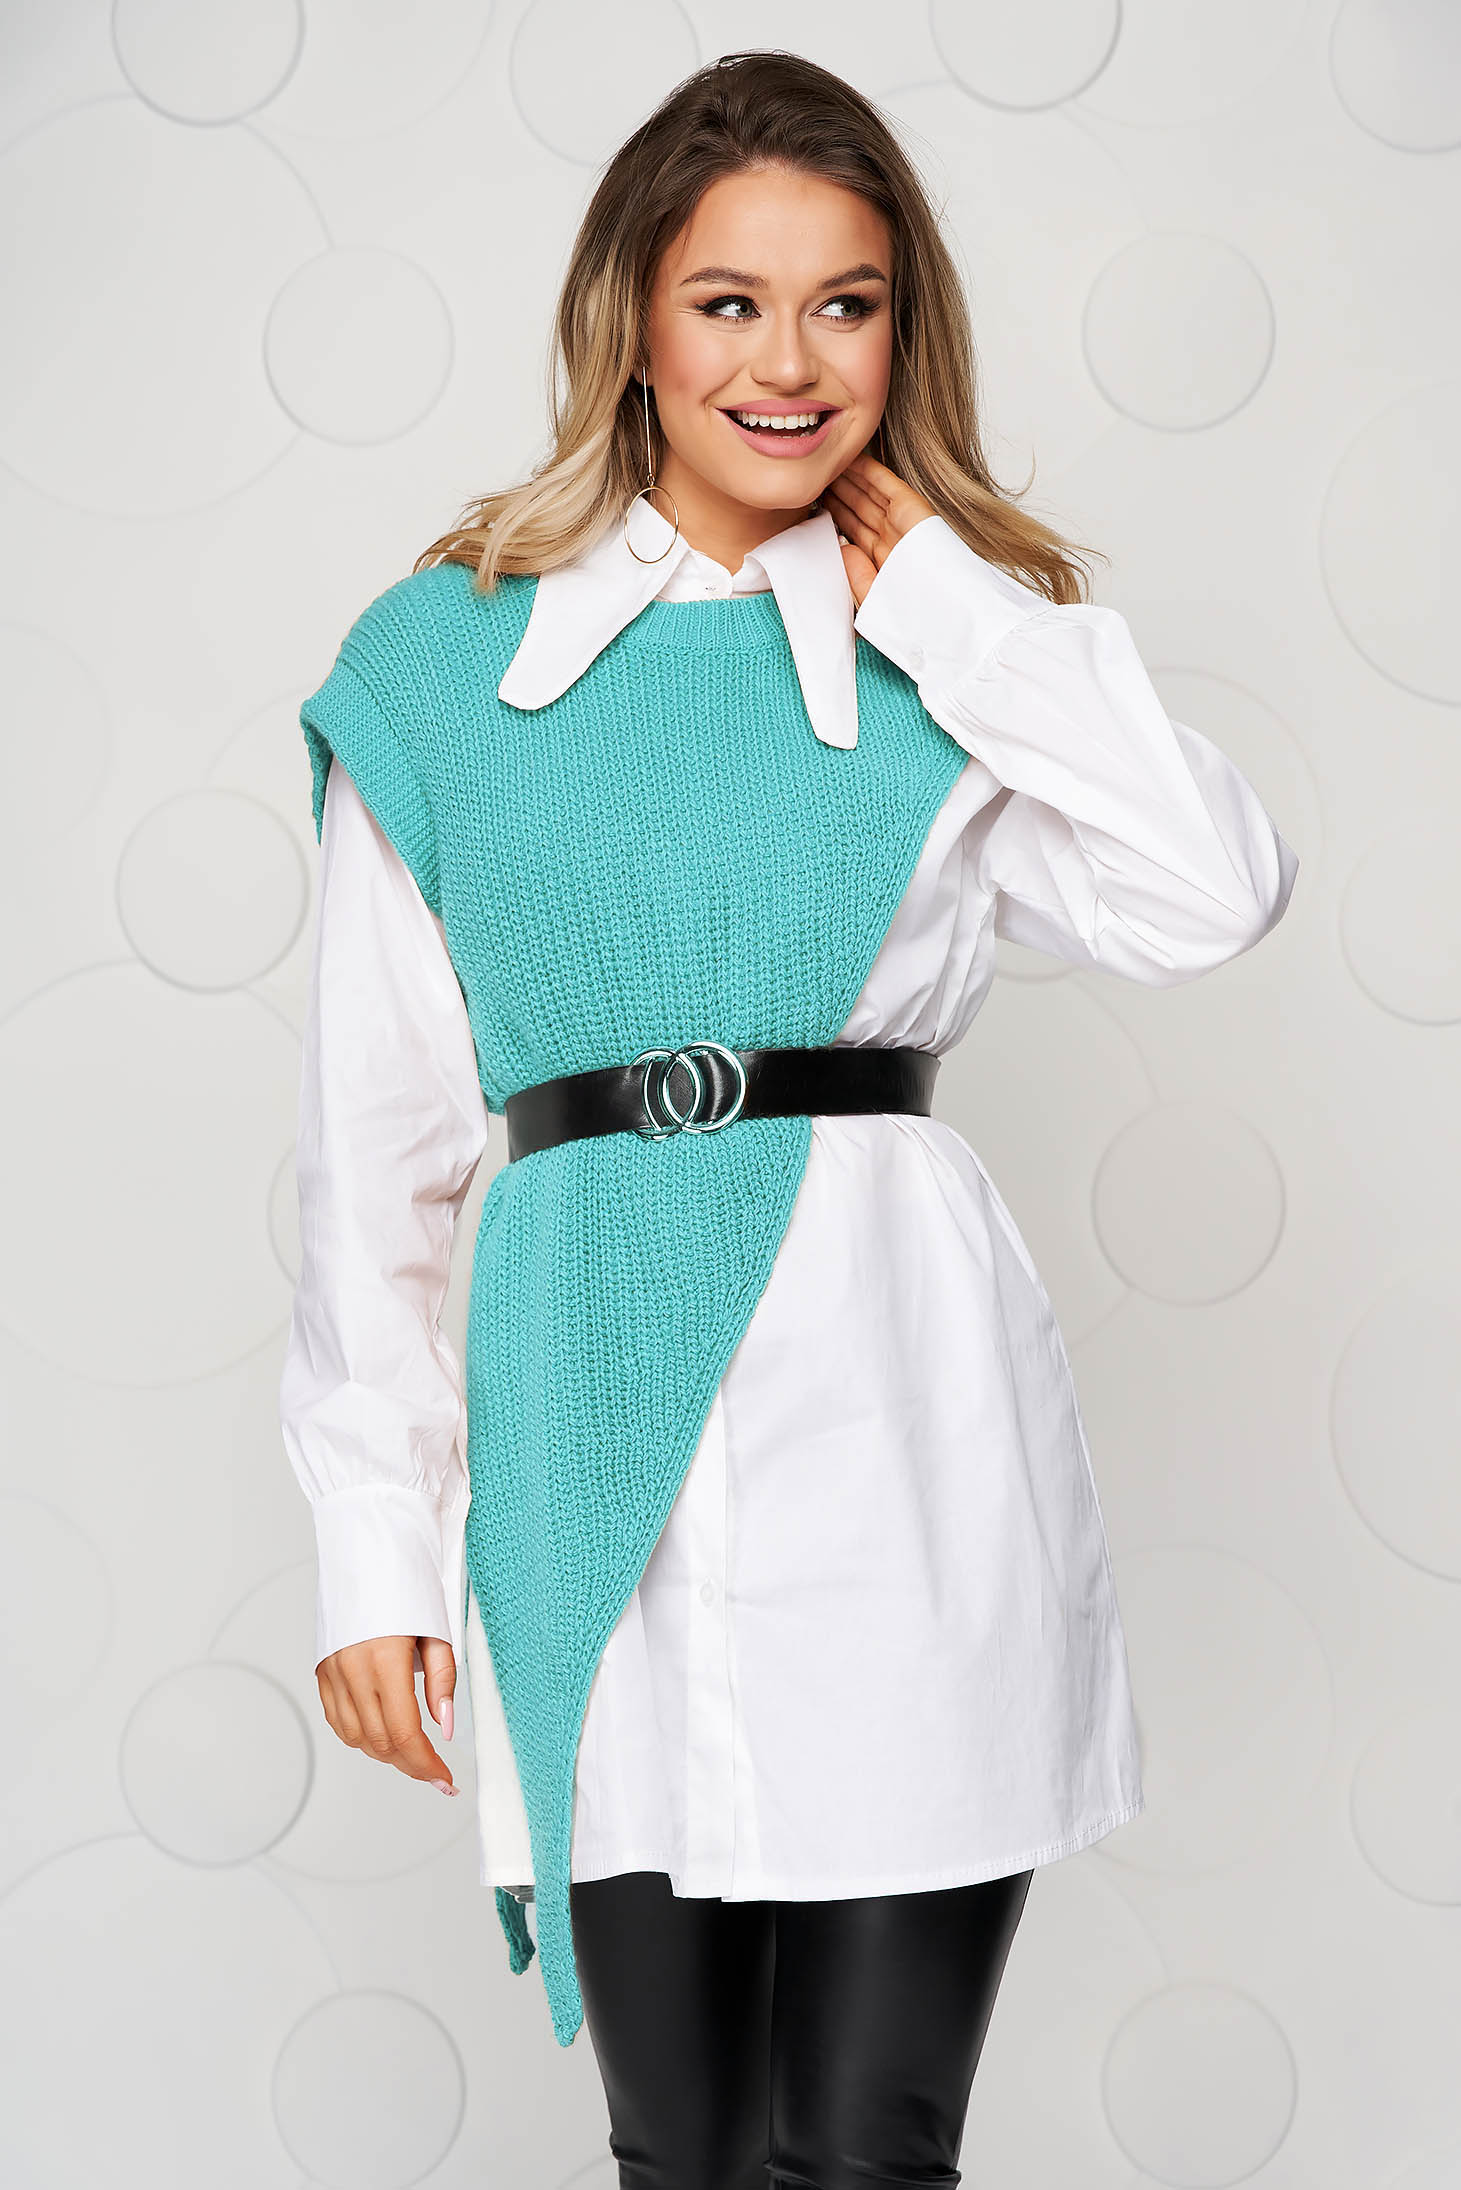 Turquoise women`s shirt fabric overlay accessorized with belt loose fit